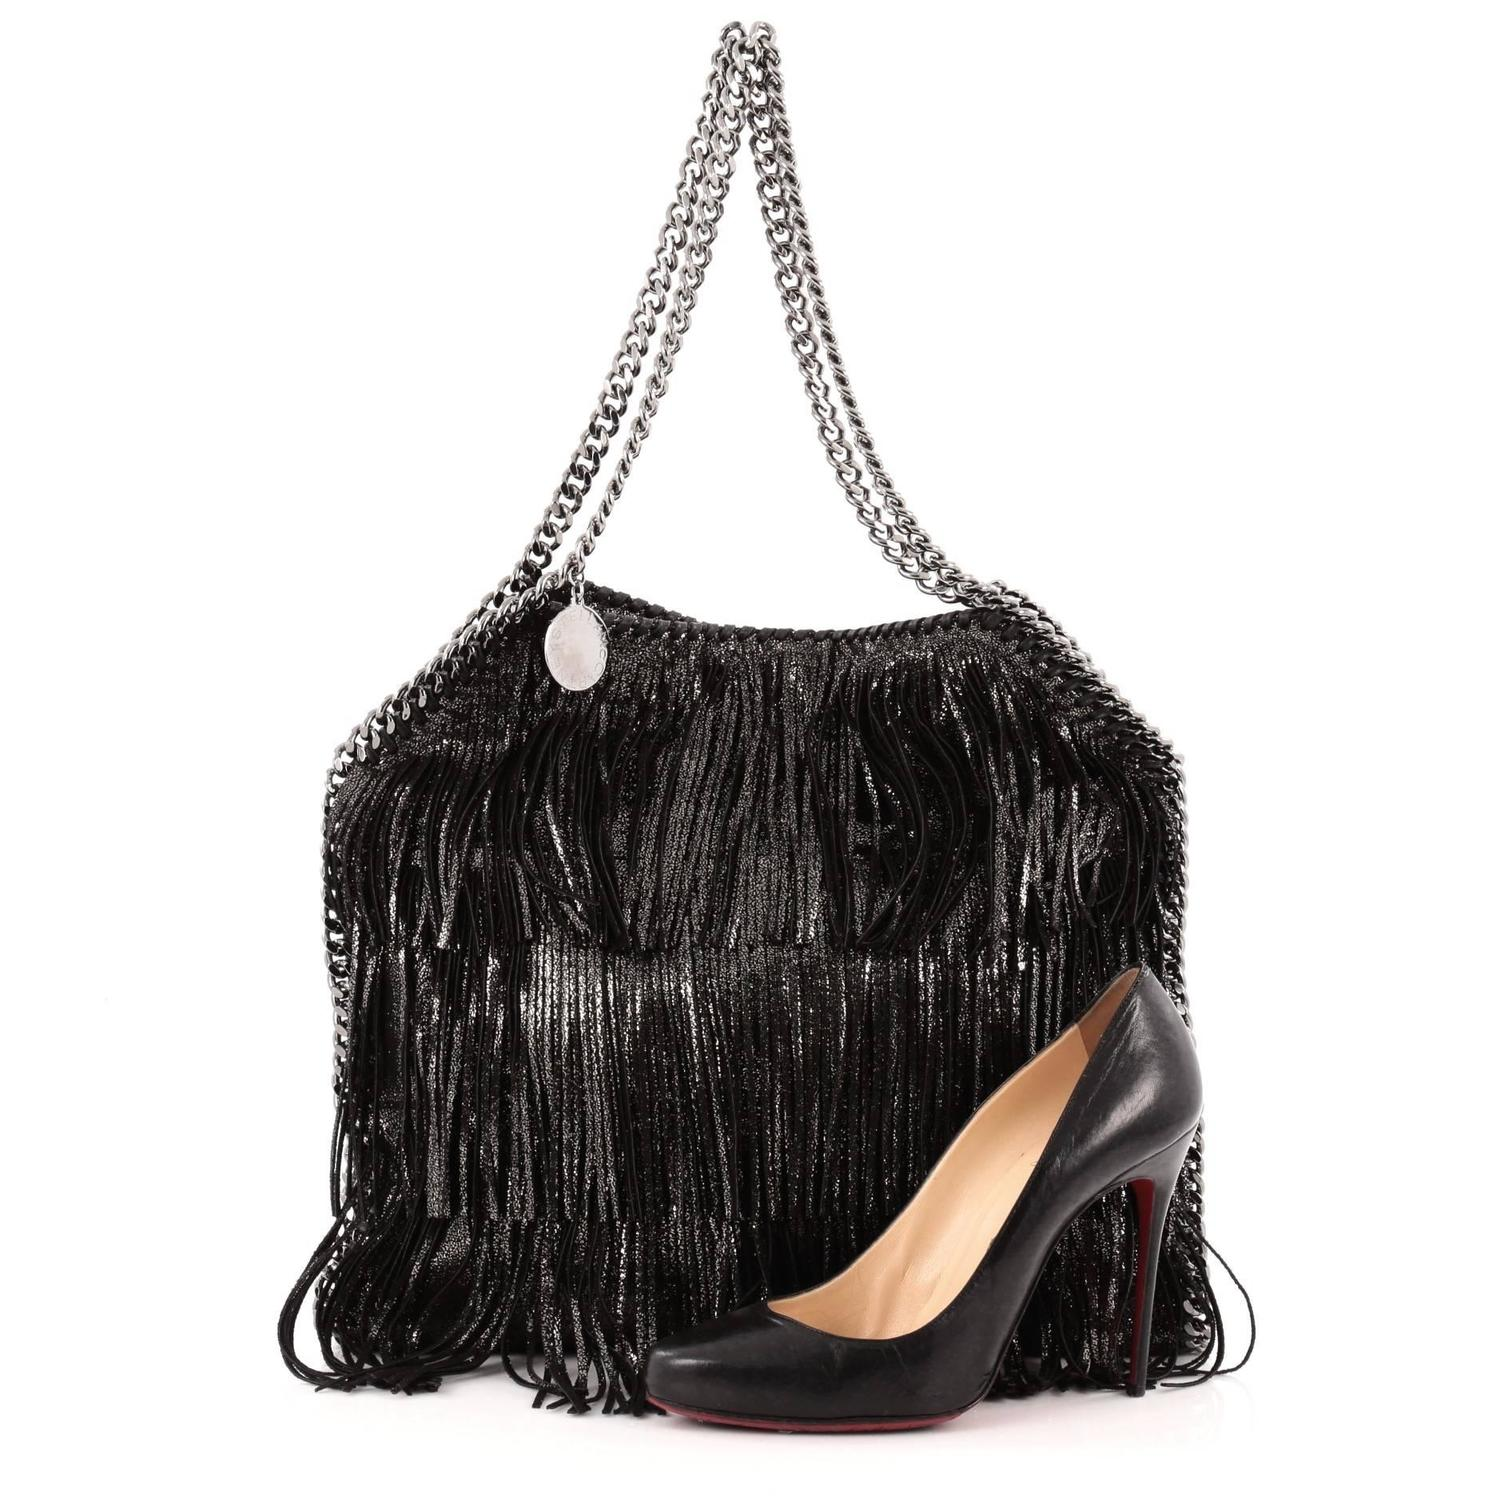 stella mccartney falabella fringe tote faux leather small for sale at 1stdibs. Black Bedroom Furniture Sets. Home Design Ideas